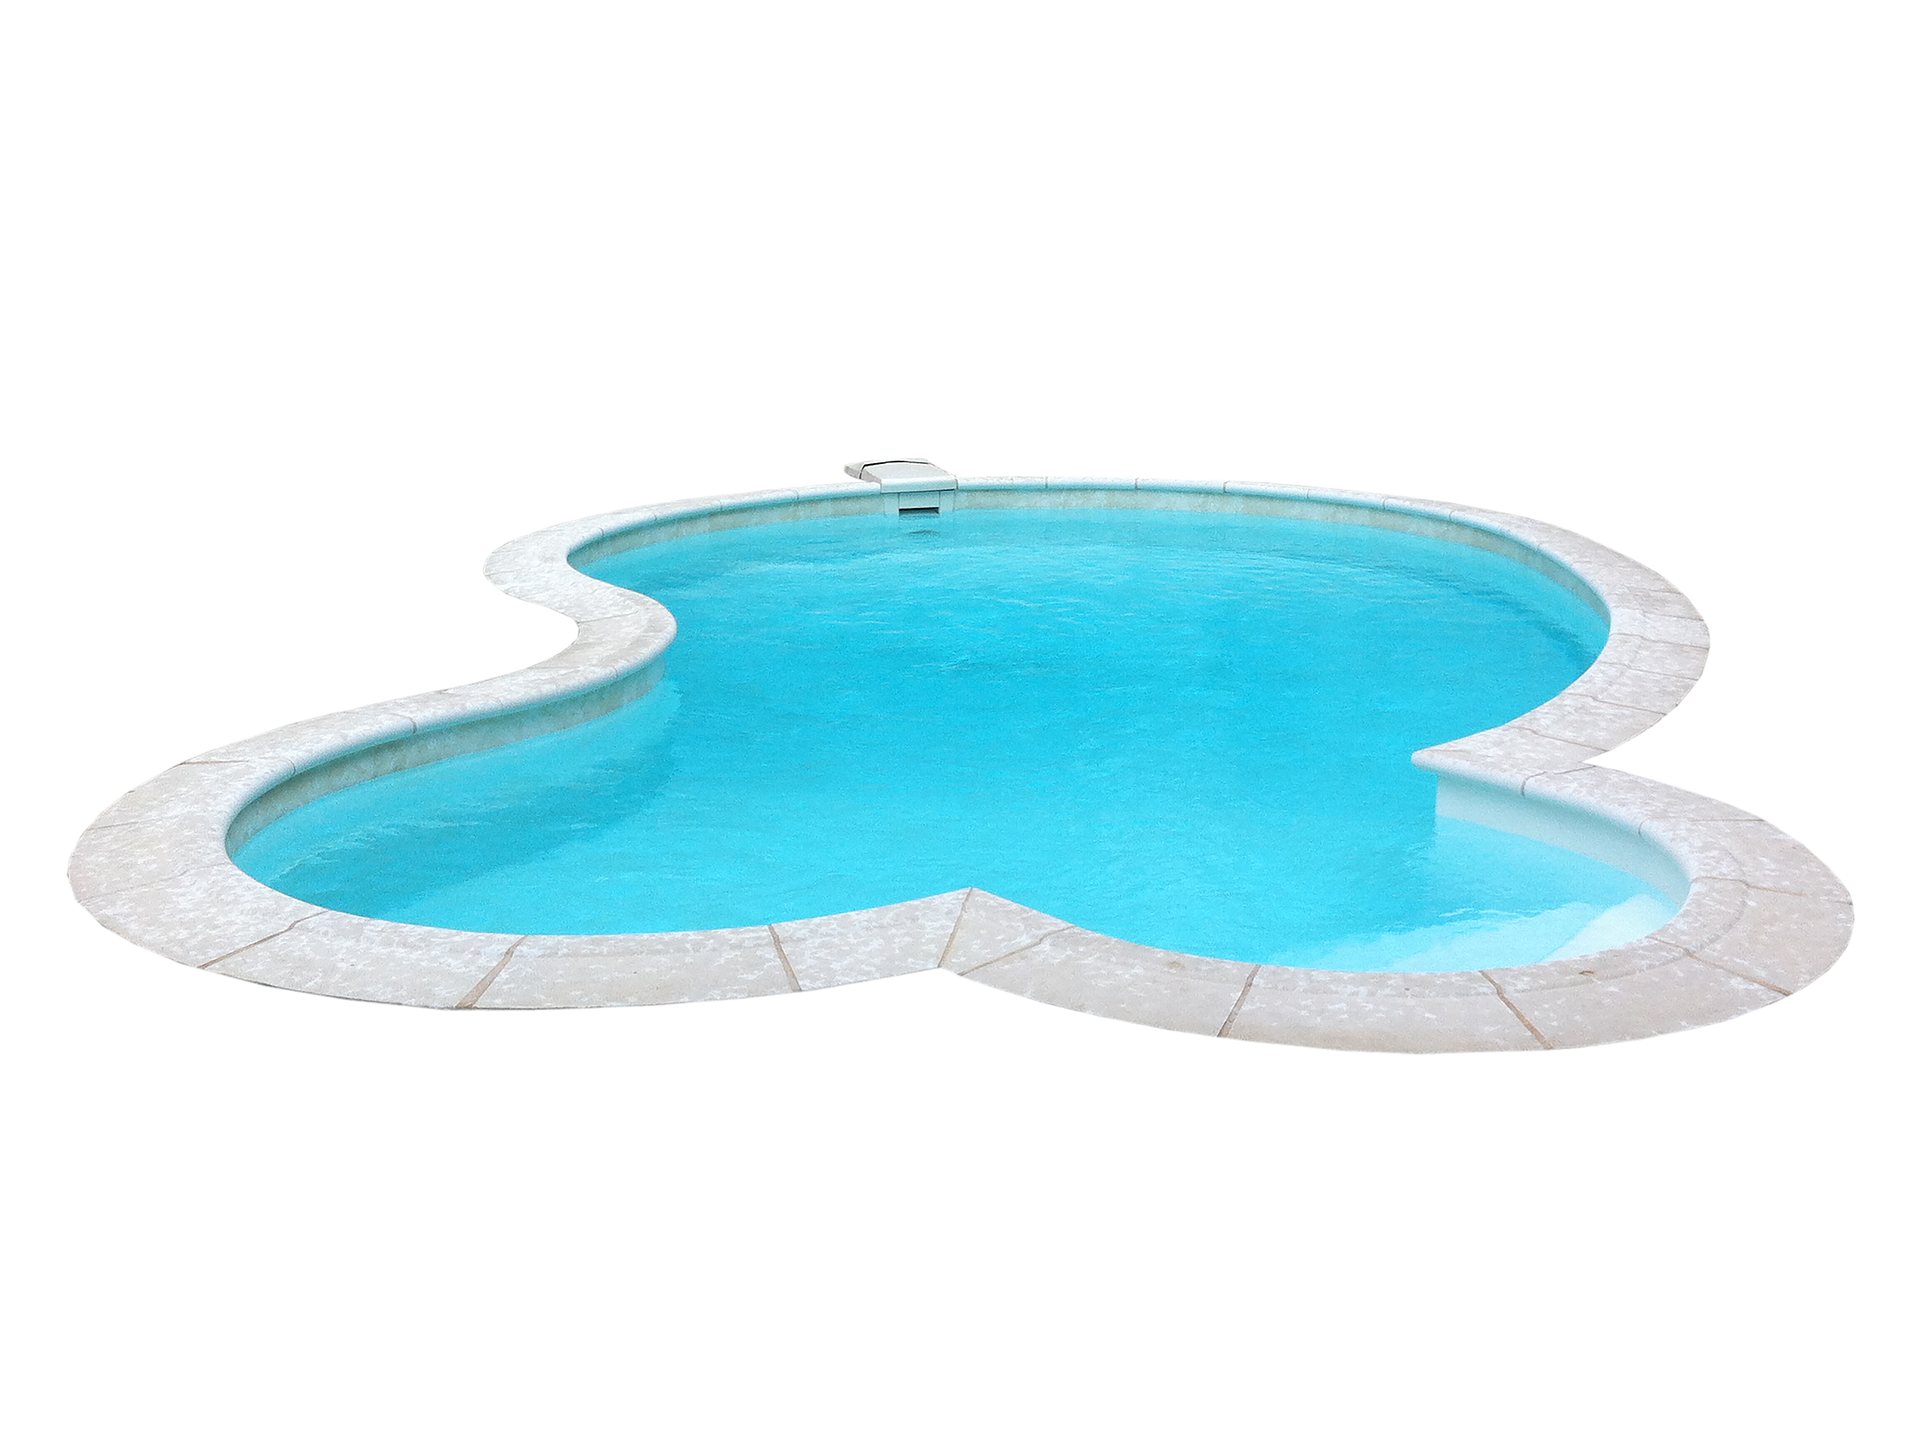 CALCULATE POOL GALLONS CHEMICALLY